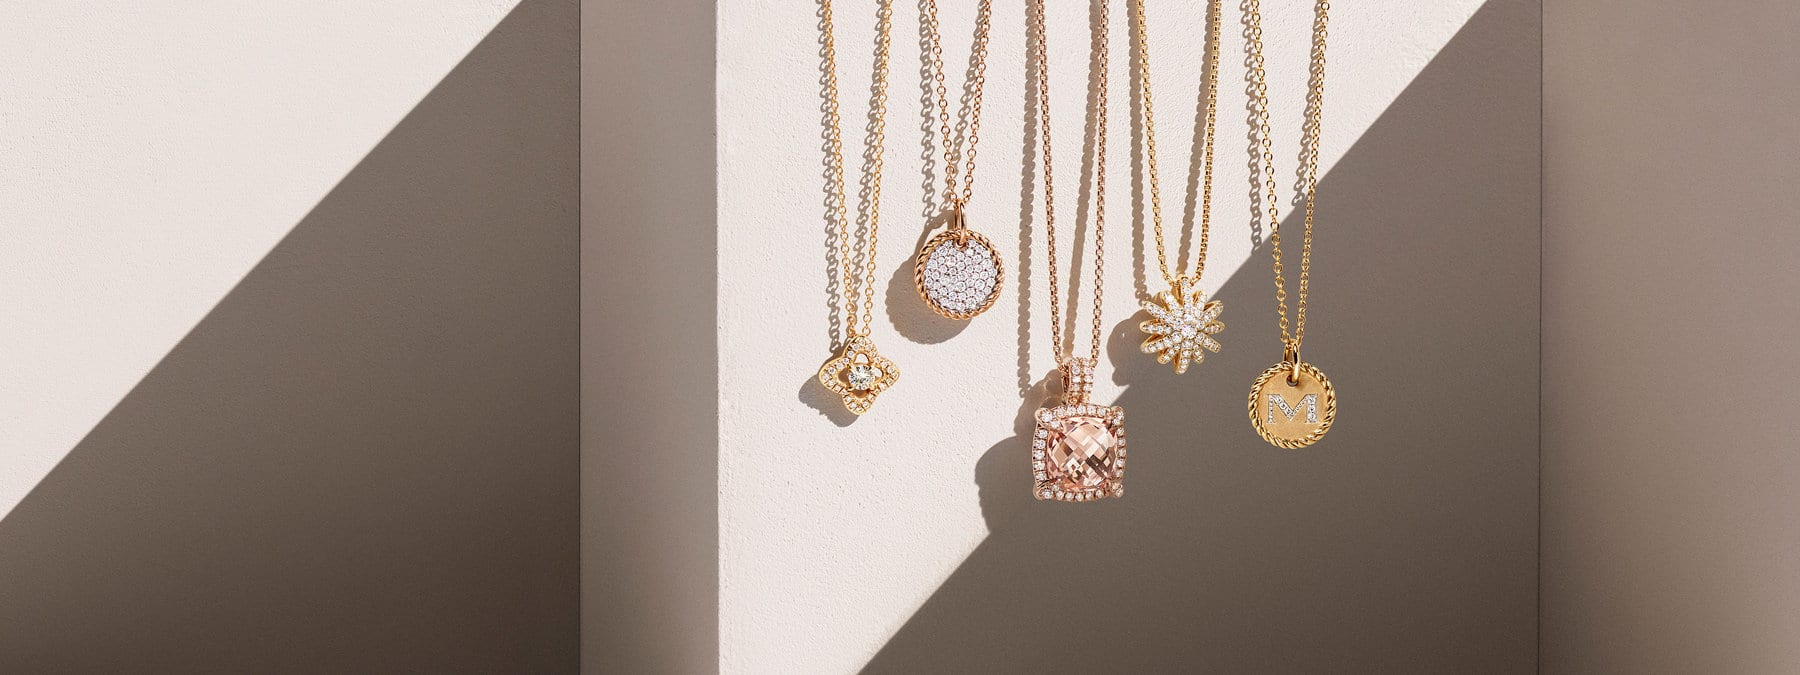 "A color photo shows five David Yurman pendant necklaces for women from the Venetian Quatrefoil, Châtelaine, Starburst and Cable Collectibles collections hanging in front of a beige-hued stone backdrop with hard diagonal shadows. The necklaces are crafted from 18K yellow gold with white diamonds and circular, quatrefoil- or star-shaped pendants. Third from the left is a Châtelaine necklace with a cushion-shaped morganite pendant and a pavé white diamond bezel. Fifth from left is a Cable Collectibles necklace with a circular initial charm featuring a pavé diamond ""M"" and a ring of Cable."